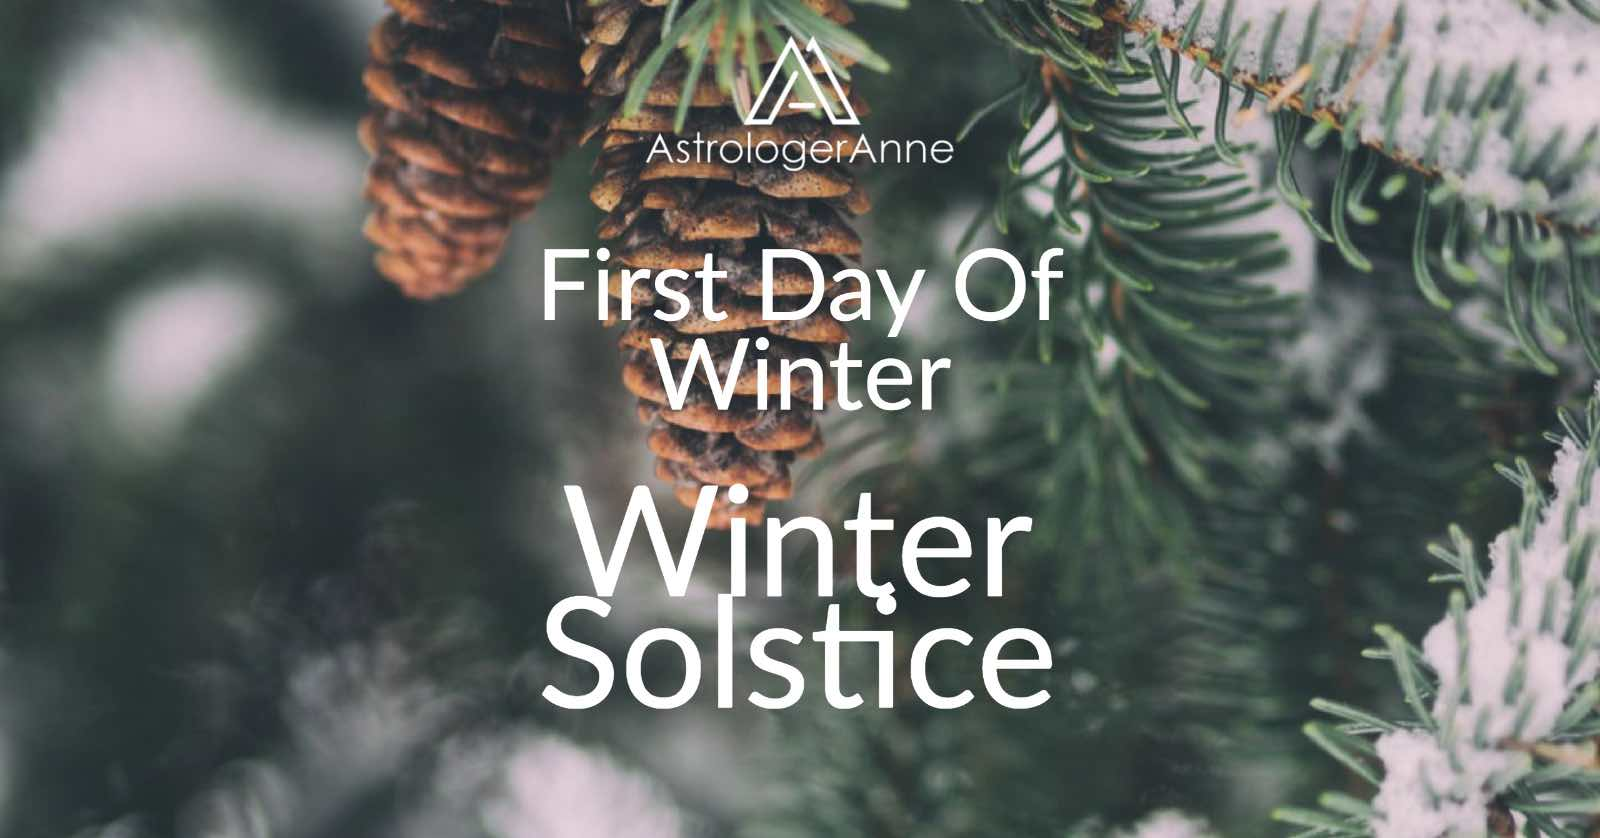 Winter solstice - first day of winter